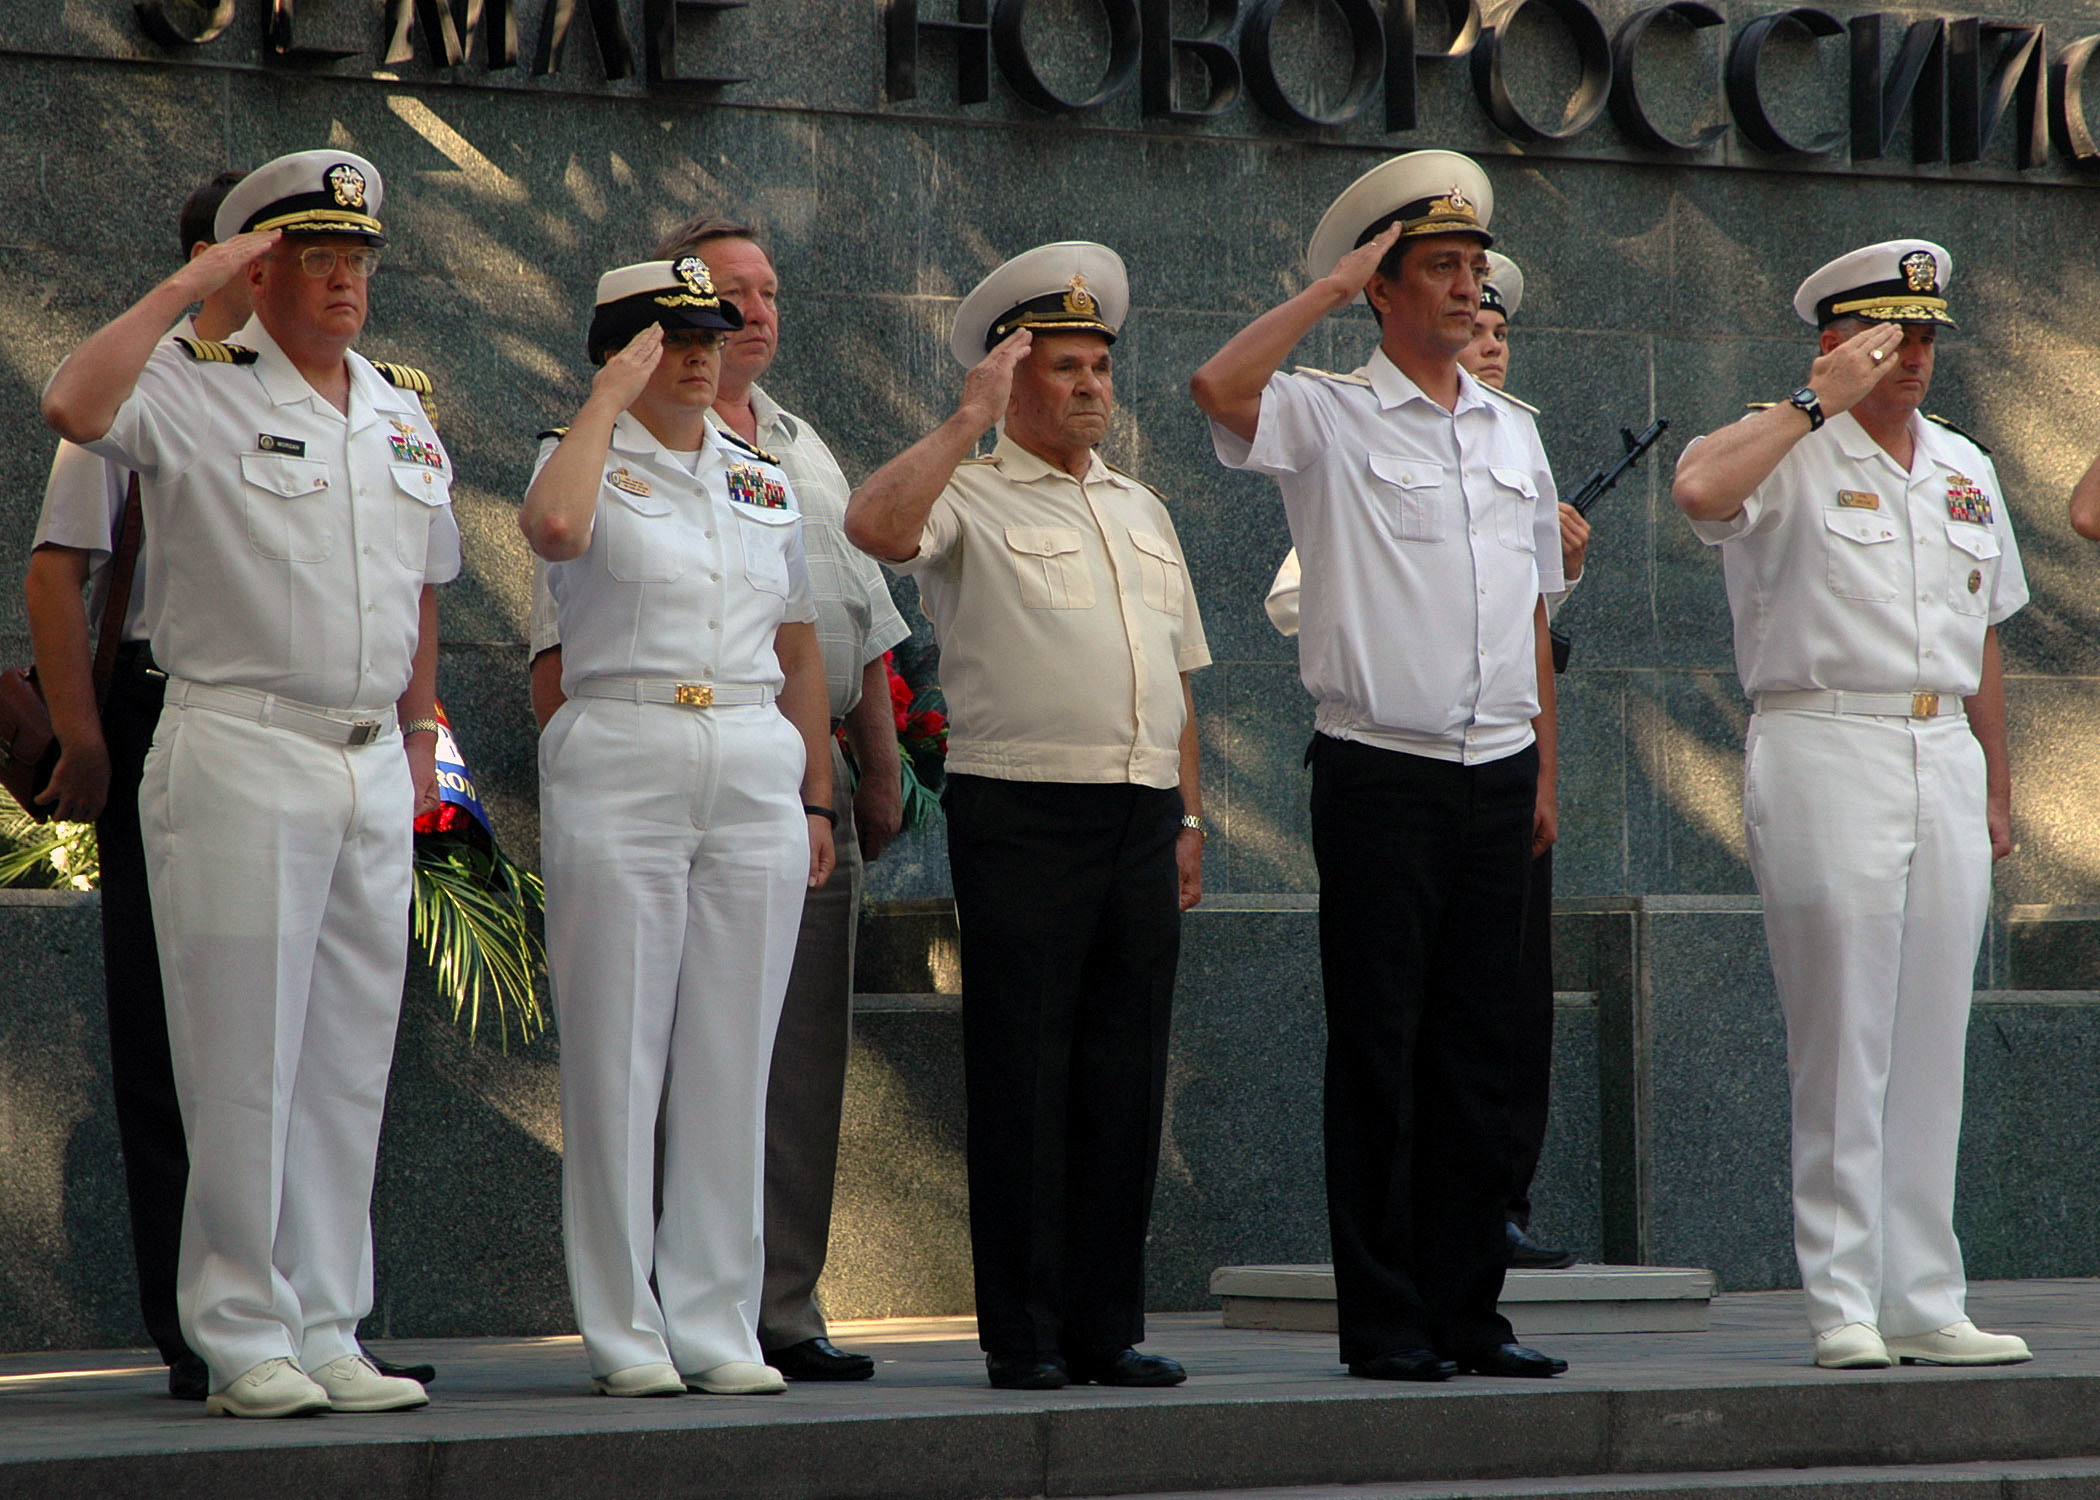 U.S. Navy Rear Adm. Phil Greene, far right, Commander Navy Europe, Policy, Resources and Strategy, and Russian Navy Rear Adm. Sergei Menyalo, second from right, Naval District Commander, render salute during the playing of the national anthems of Russia and the U.S. following a wreath laying ceremony at Novorossiysk, Russia, on Sept. 8, 2006. The 90-minute ceremony was held in memory of Russian soldiers who liberated the city from German occupation during World War II. (U.S. Navy photo by Mass Communication SPECIALIST 2nd Class Michael Lavender) (Released)